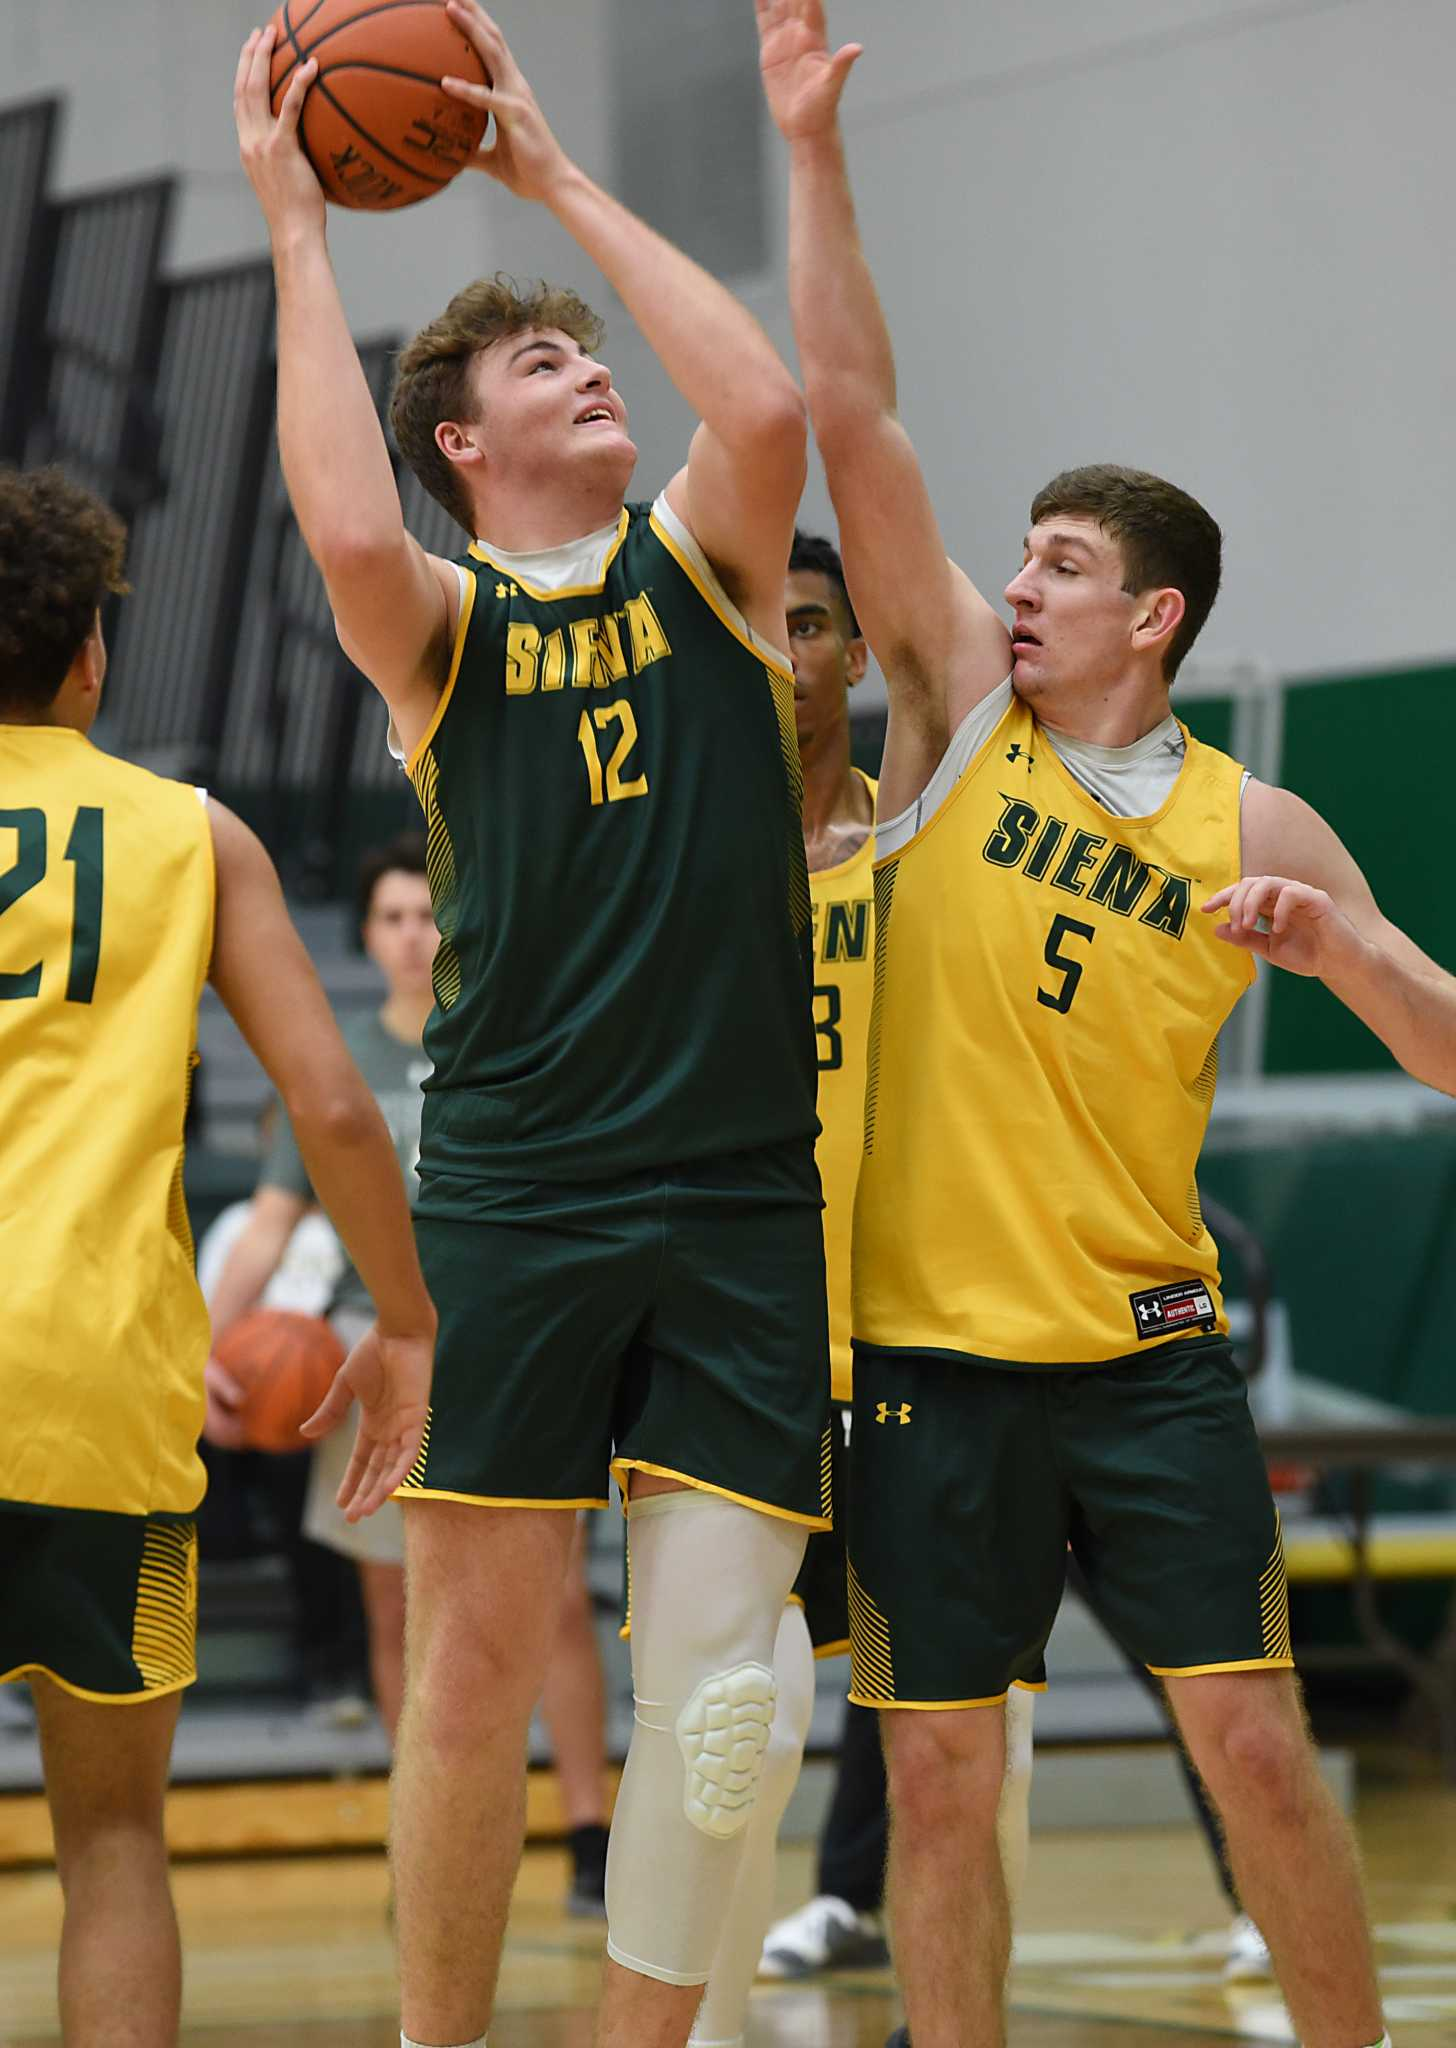 Siena basketball freshman getting used to bigger stage